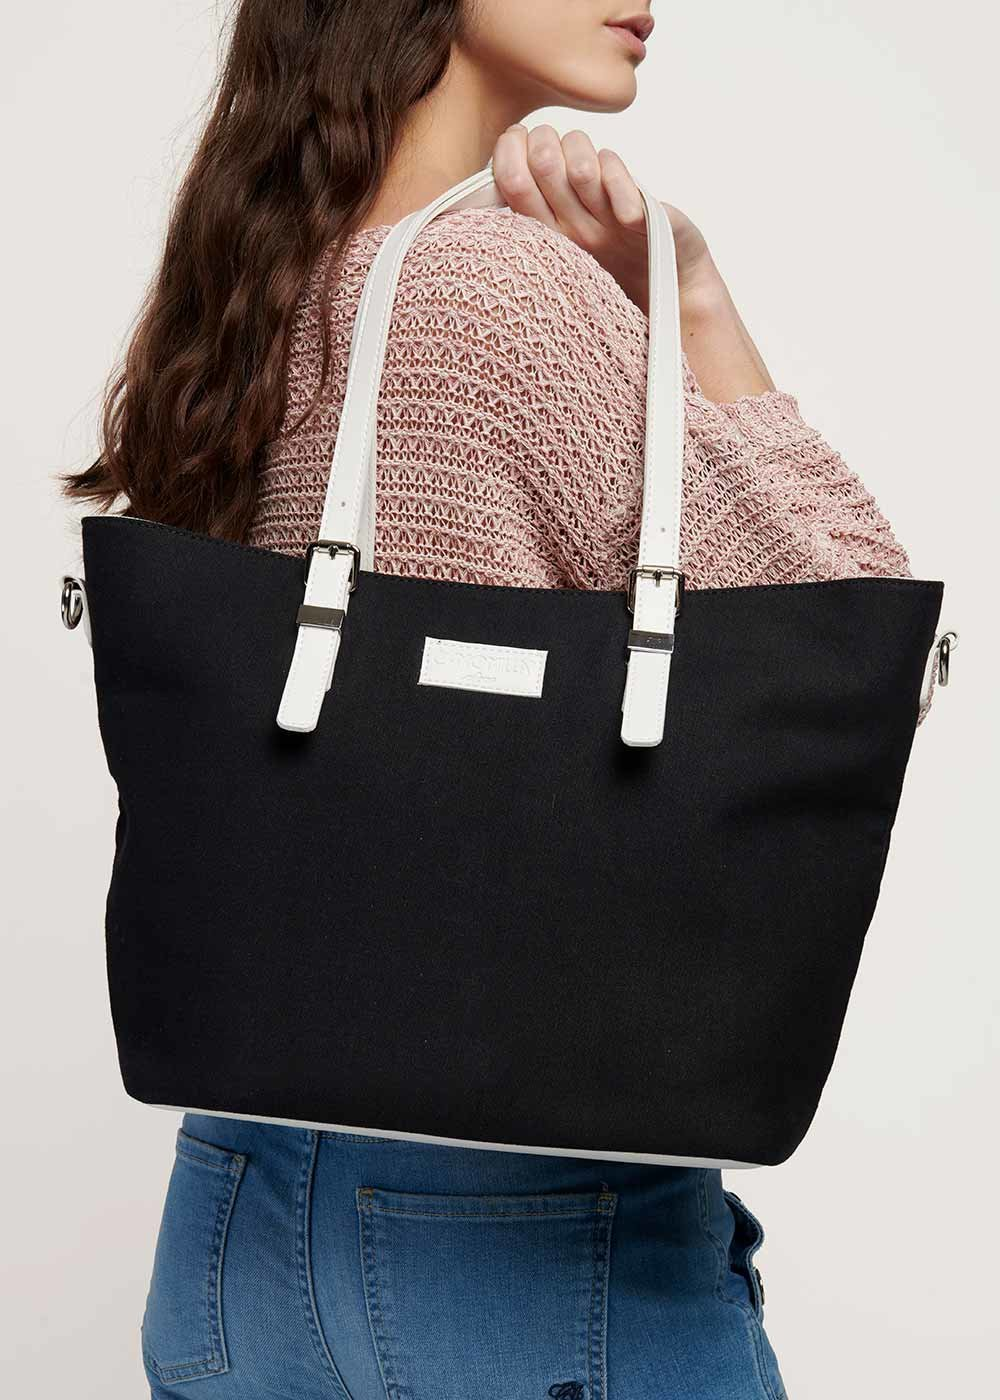 Beatris canvas bag - Black / White - Woman